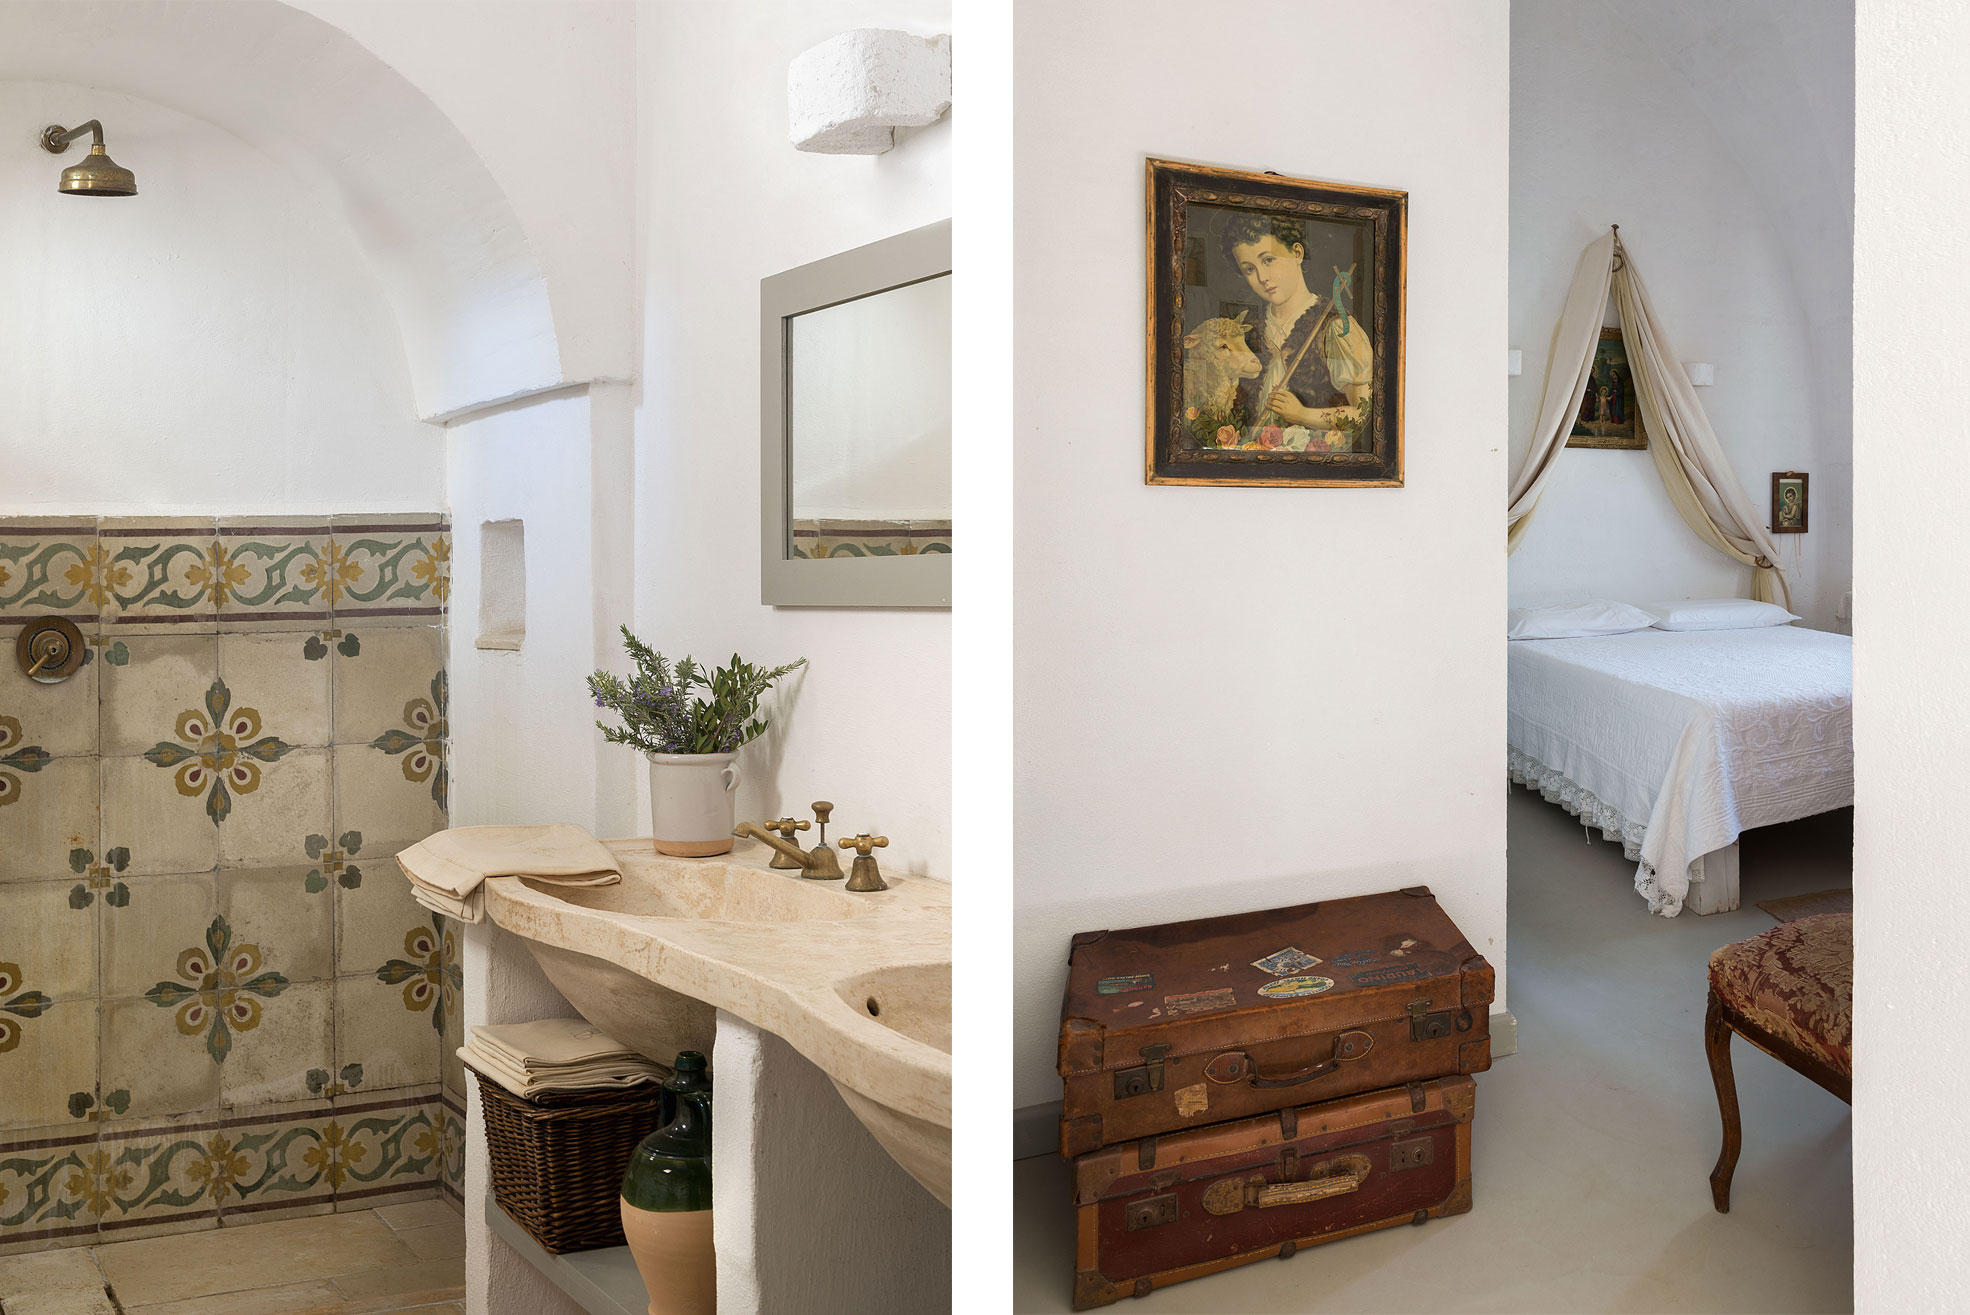 Bathroom at Masseria Potenti in Puglia Photographer Maria Teresa Furnari